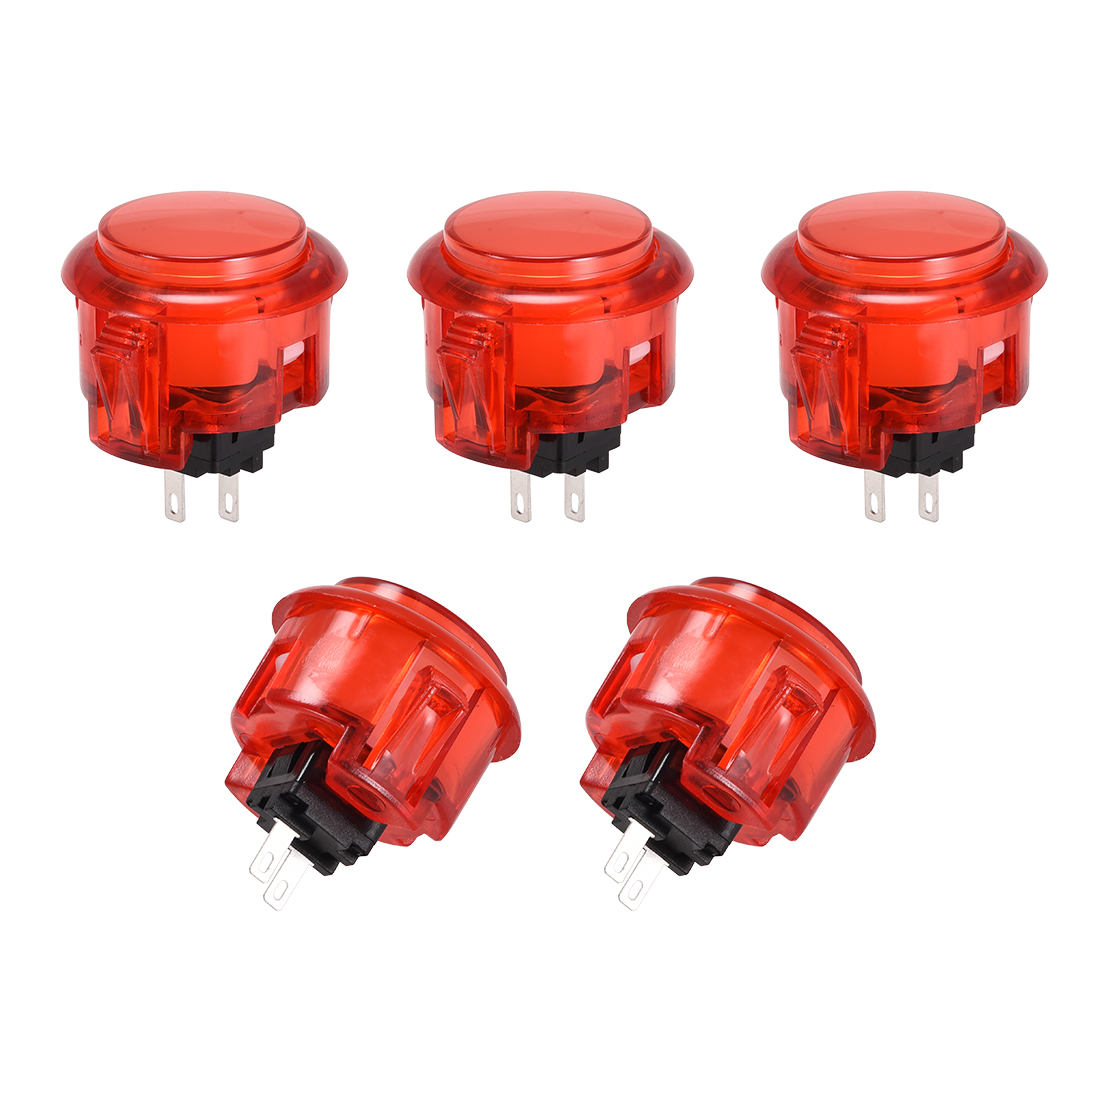 30mm Mounting Momentary Game Push Button for Video Games Red 5pcs